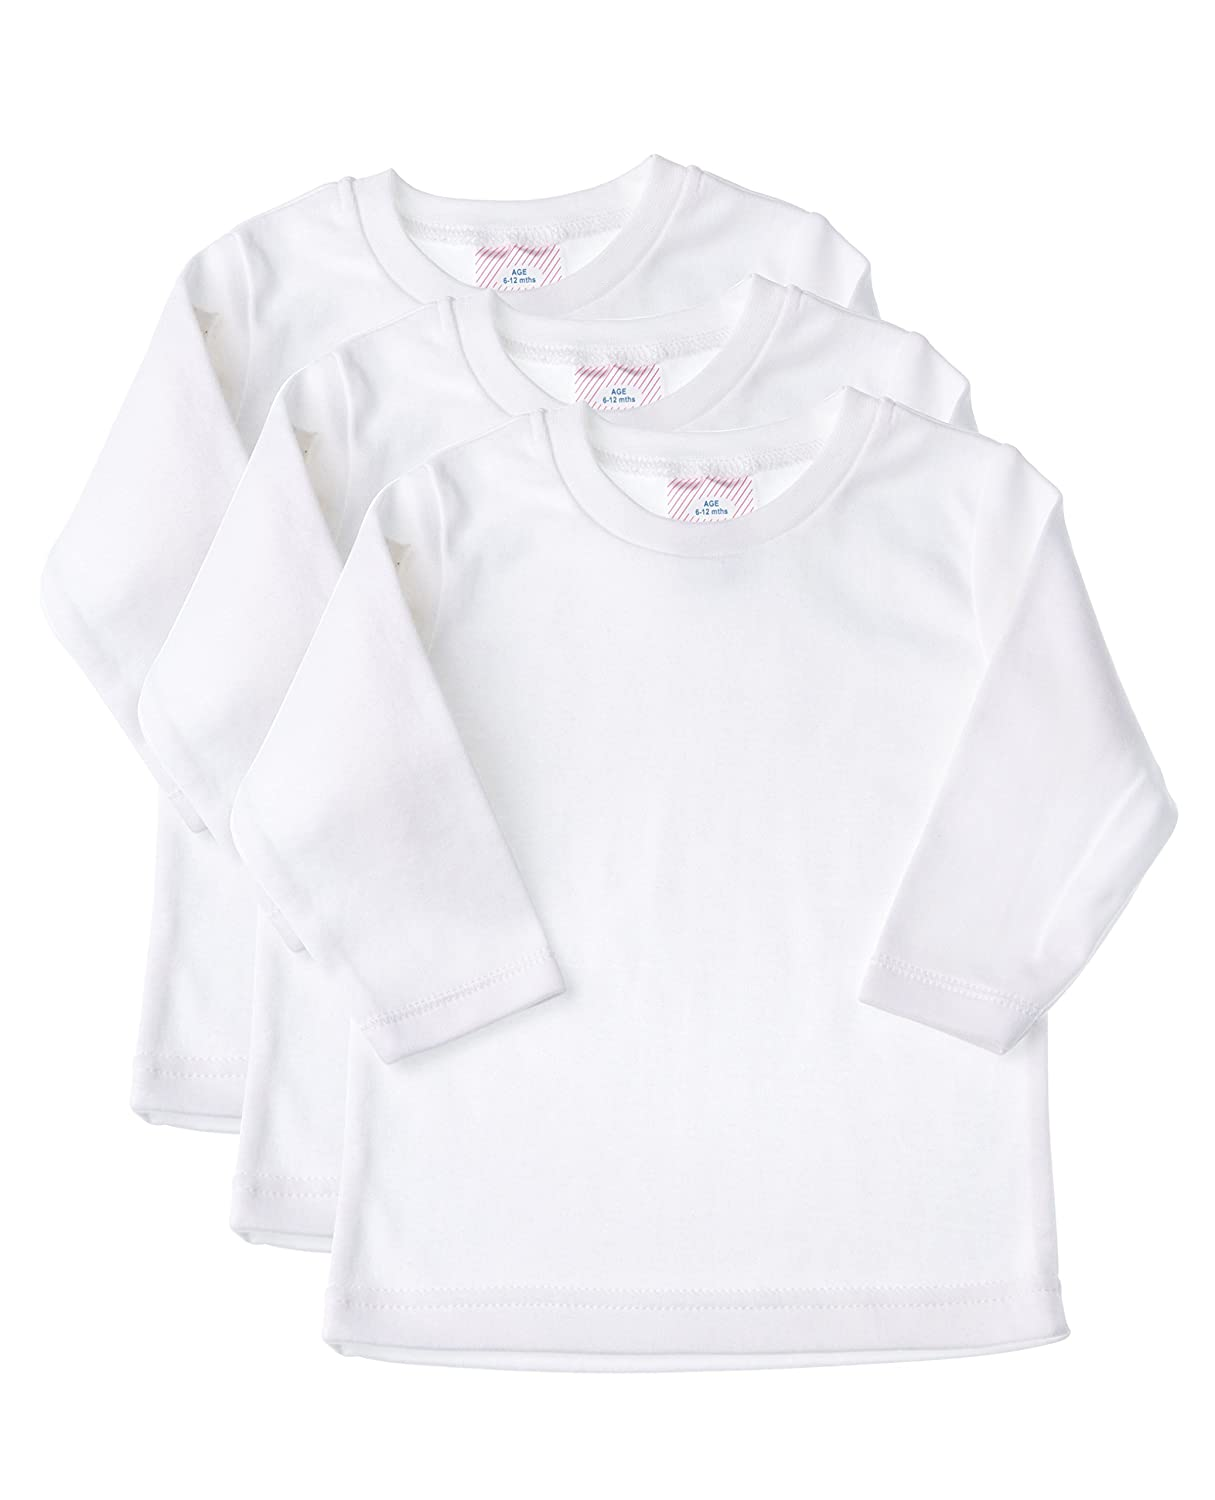 Baby Jay Long Sleeved Undershirt 3 Pack - White Unisex Baby and Toddler Soft Cotton Tee - Boys and Girls T Shirt WTLR-3PK